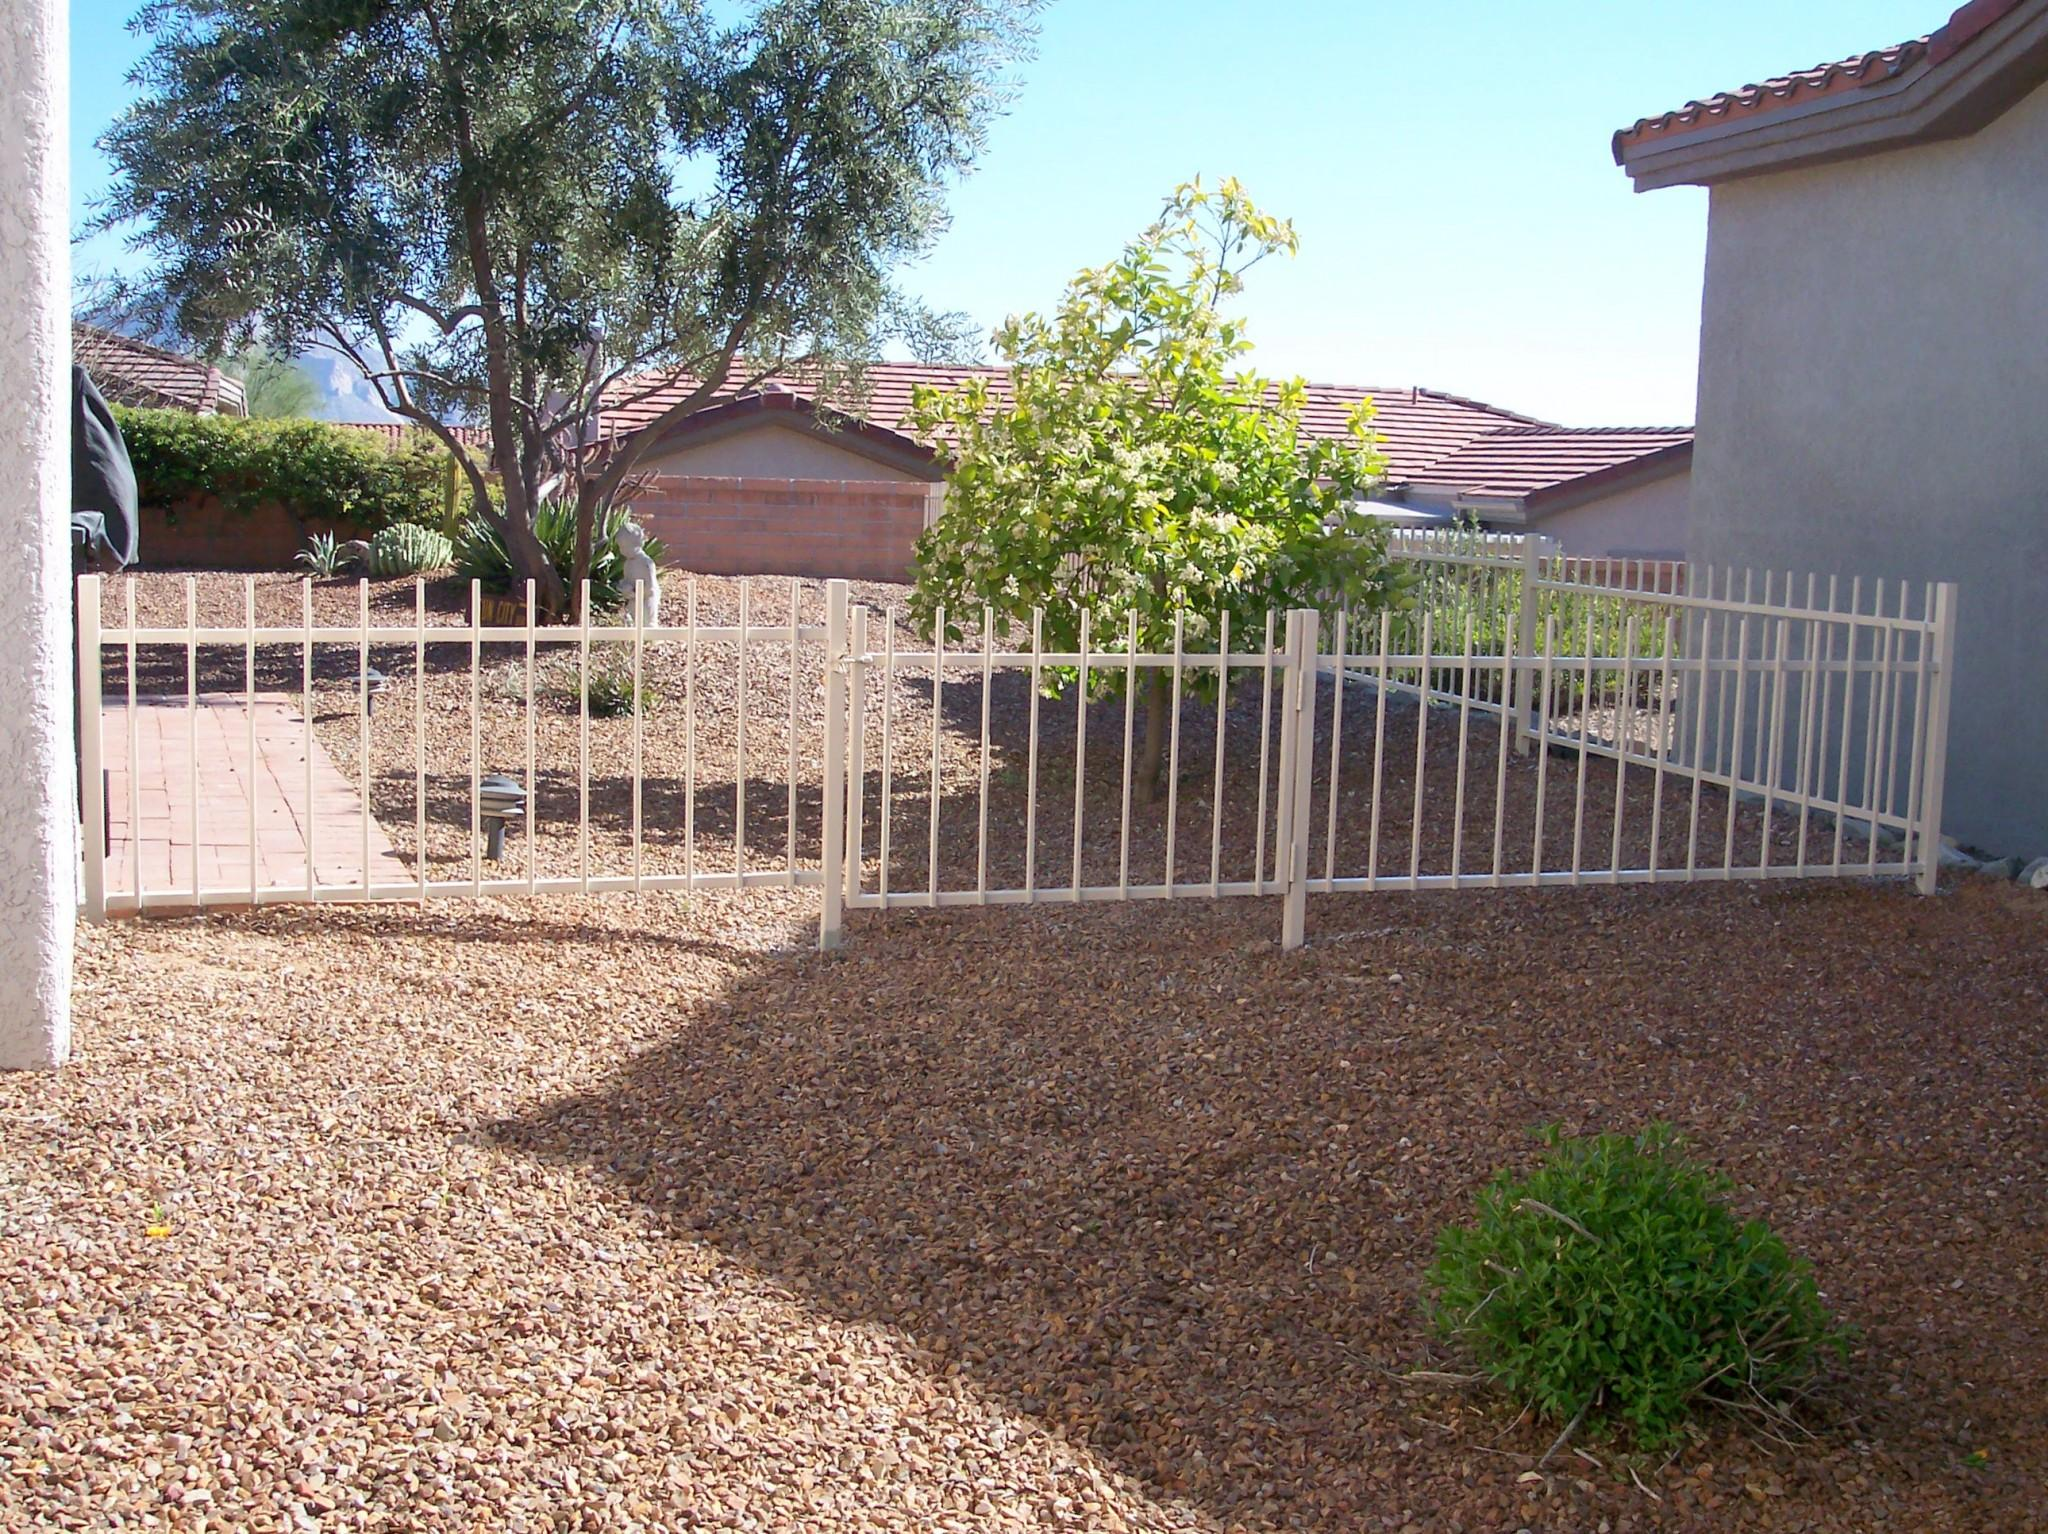 Low backyard fence for small dogs and HOA compliance IF104-4 EP